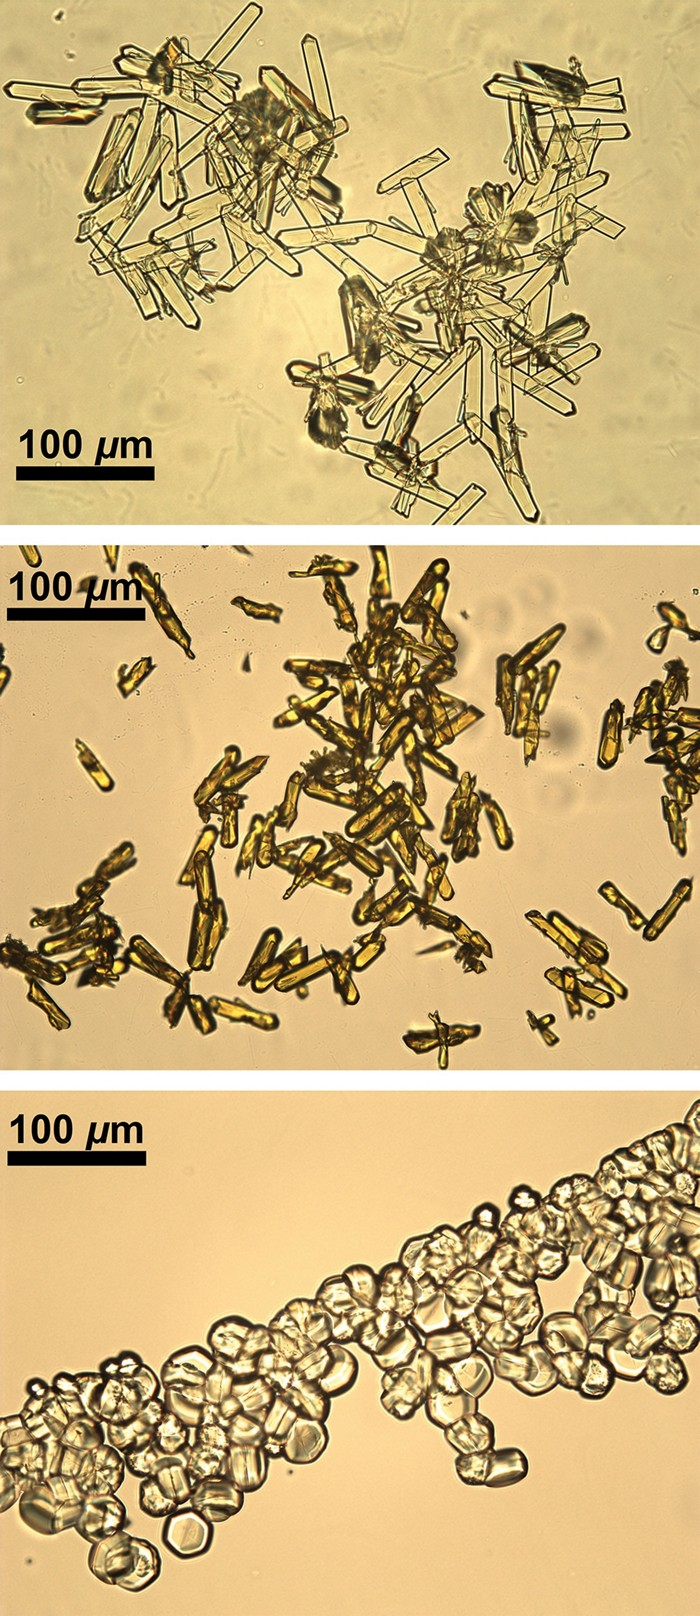 09629-scicon2-3micrographs.jpg